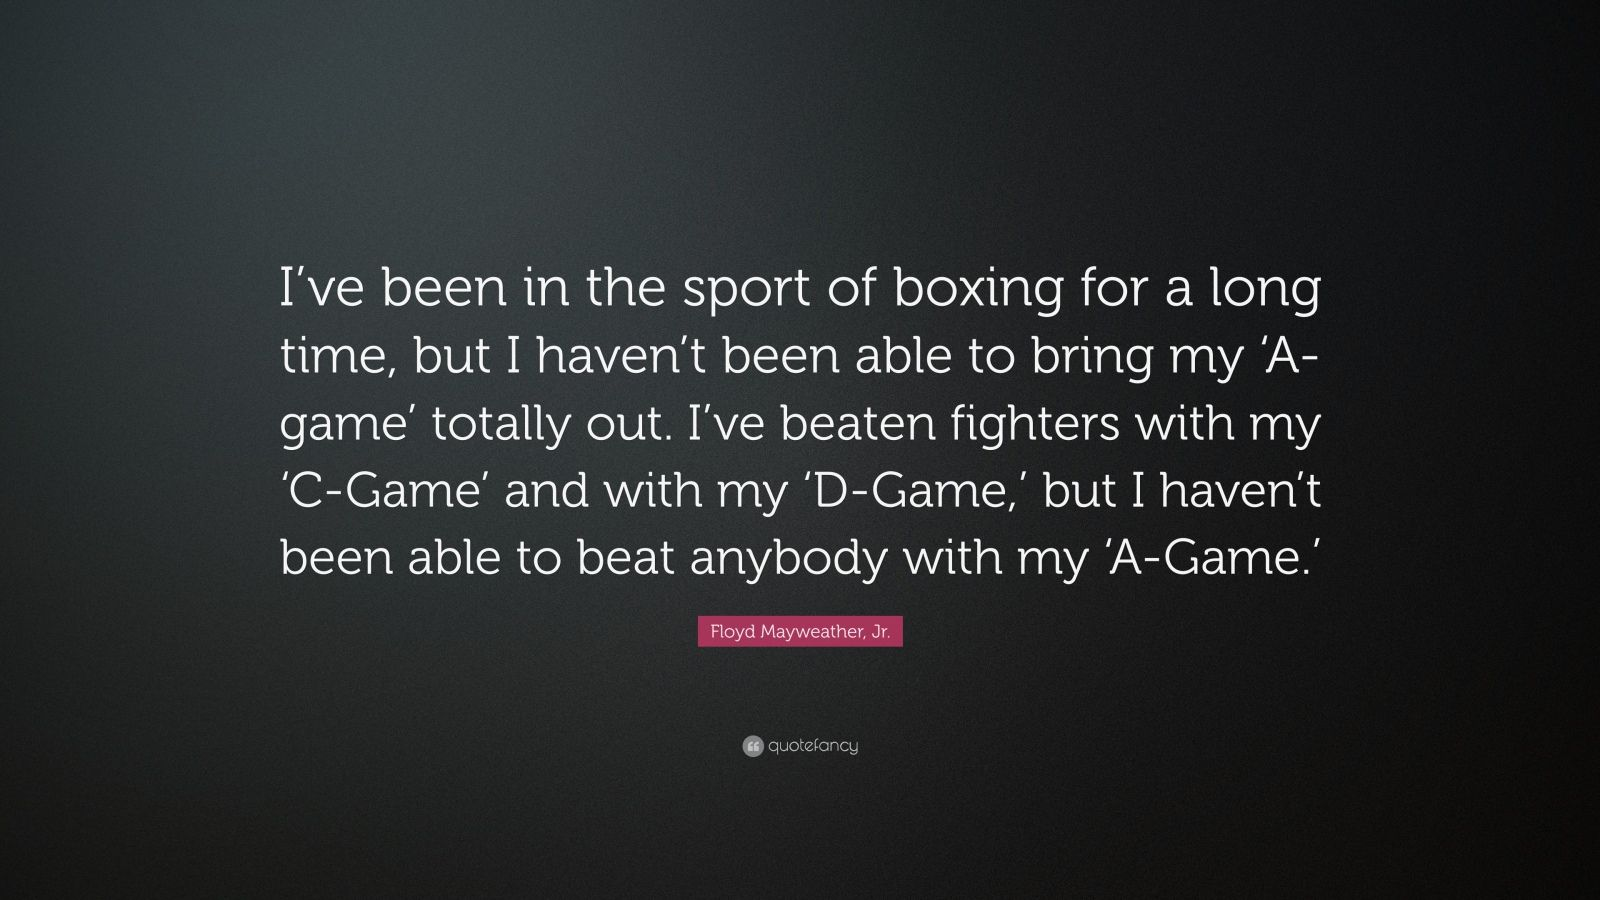 "Floyd Mayweather, Jr. Quote: ""I've been in the sport of boxing for a long time, but I haven't been able to bring my 'A-game' totally out. I've beaten fighters with my 'C-Game' and with my 'D-Game,' but I haven't been able to beat anybody with my 'A-Game.'"""